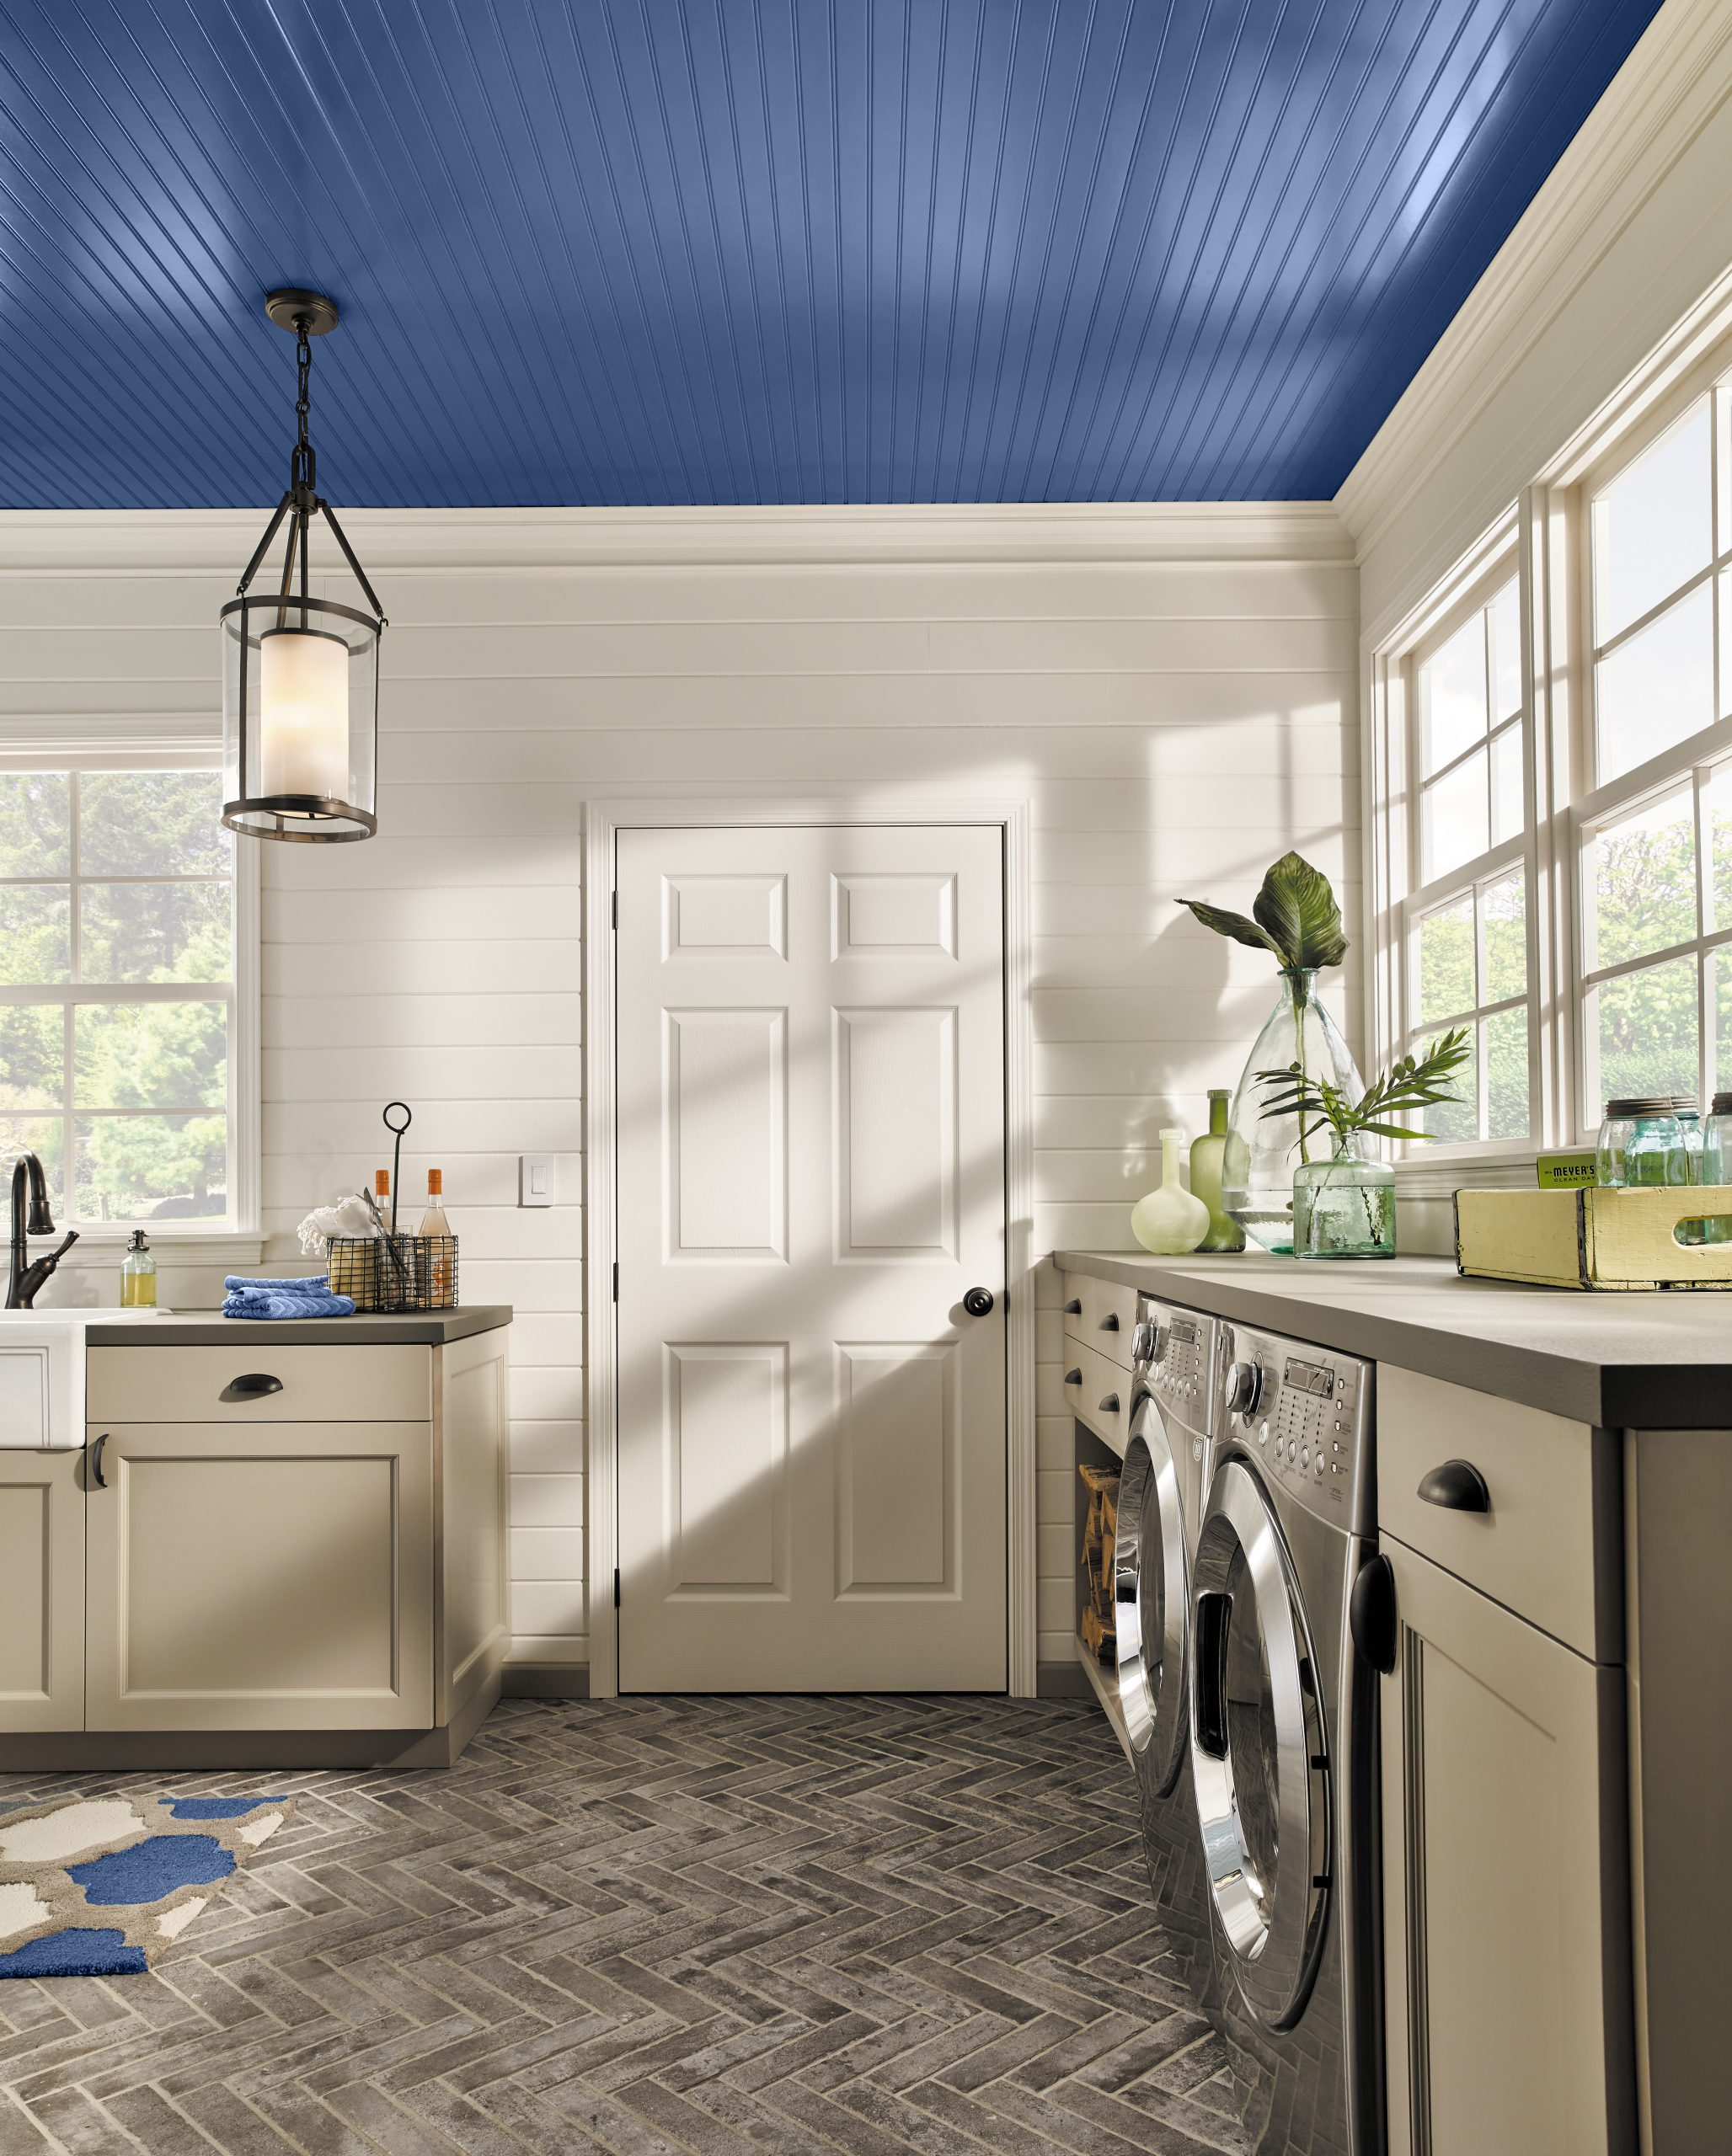 A large and well lit laundry room with a glossy painted blue ceiling.